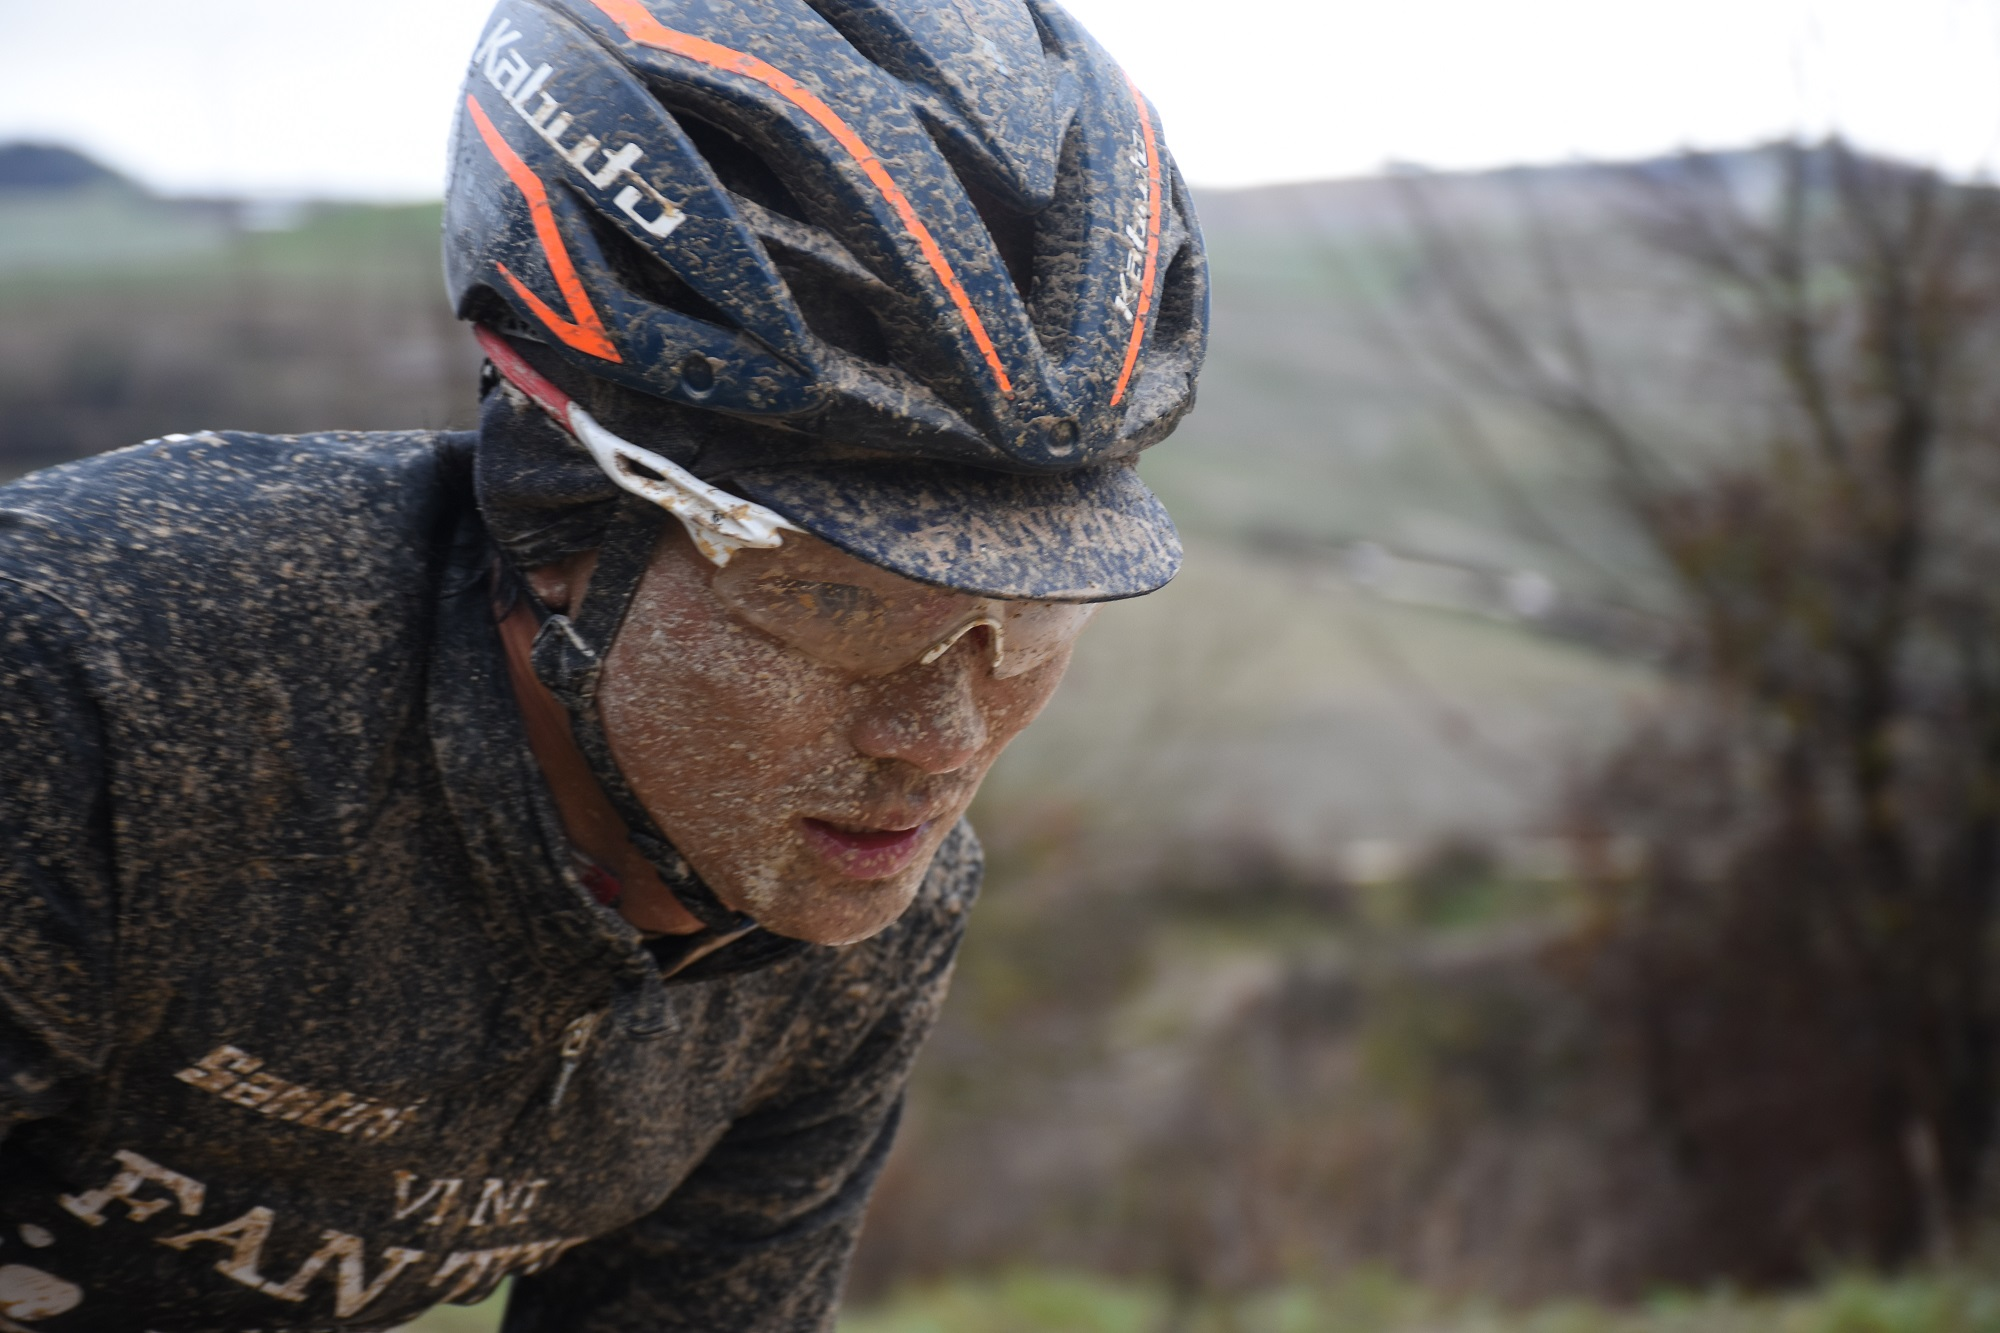 a mud-splattered rider on the dirt roads in the strade bianche 2018